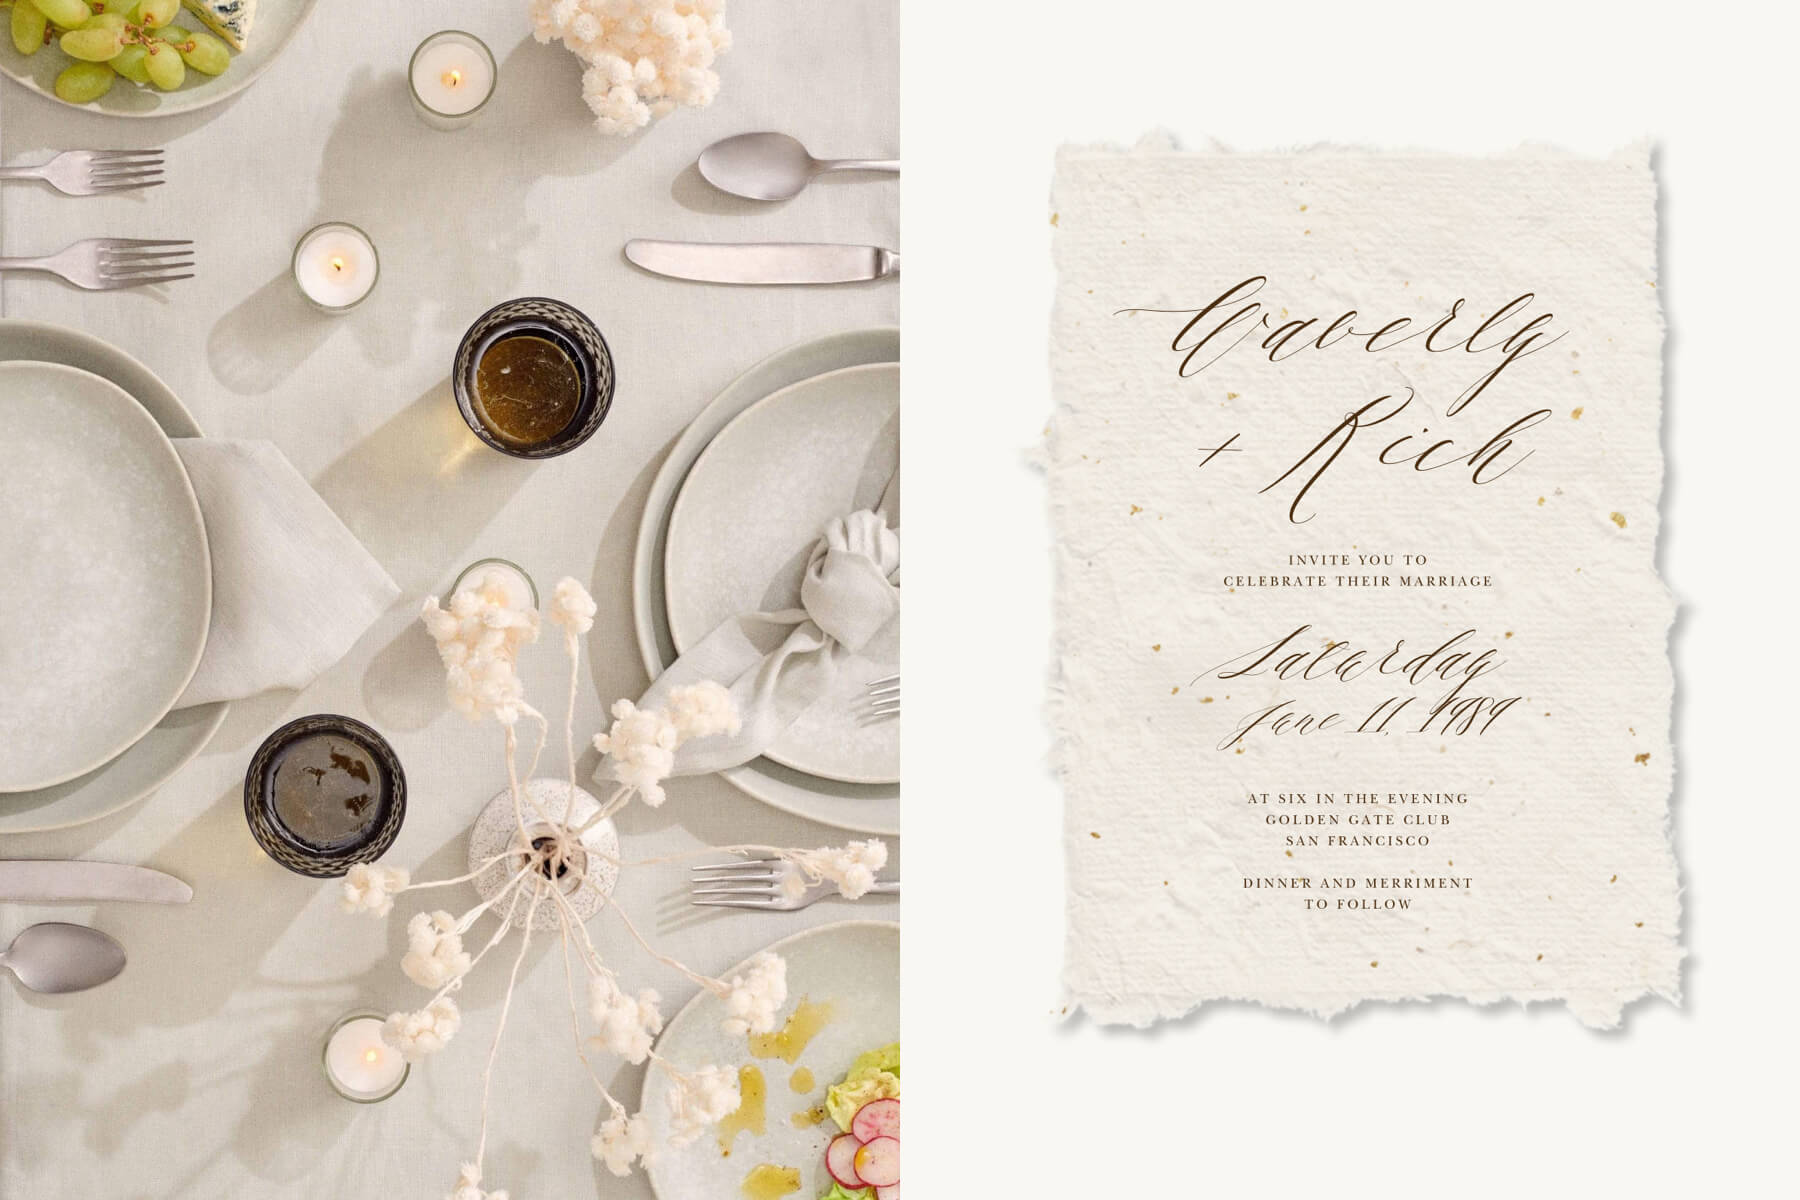 Right: Grey Essentials Tableware Collection by Social Studies. Left: Cennini wedding invitation by Paperless Post